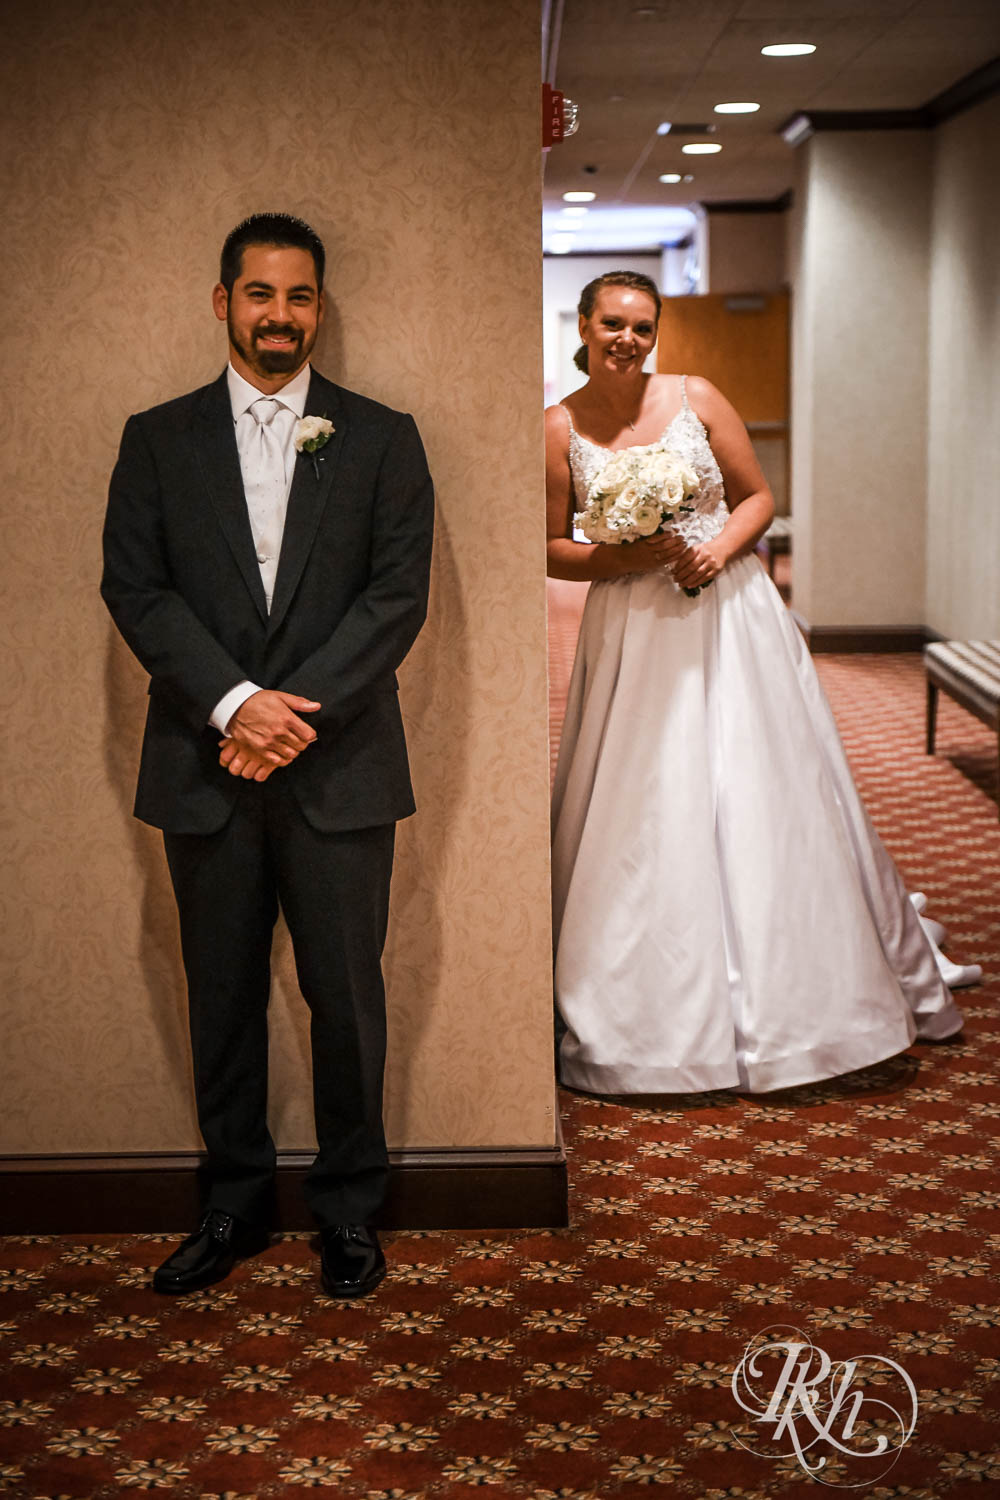 Kayla & Travis - Minnesota Wedding Photography - Crowne Plaza Minneapolis - RKH Images - Blog  (29 of 61).jpg